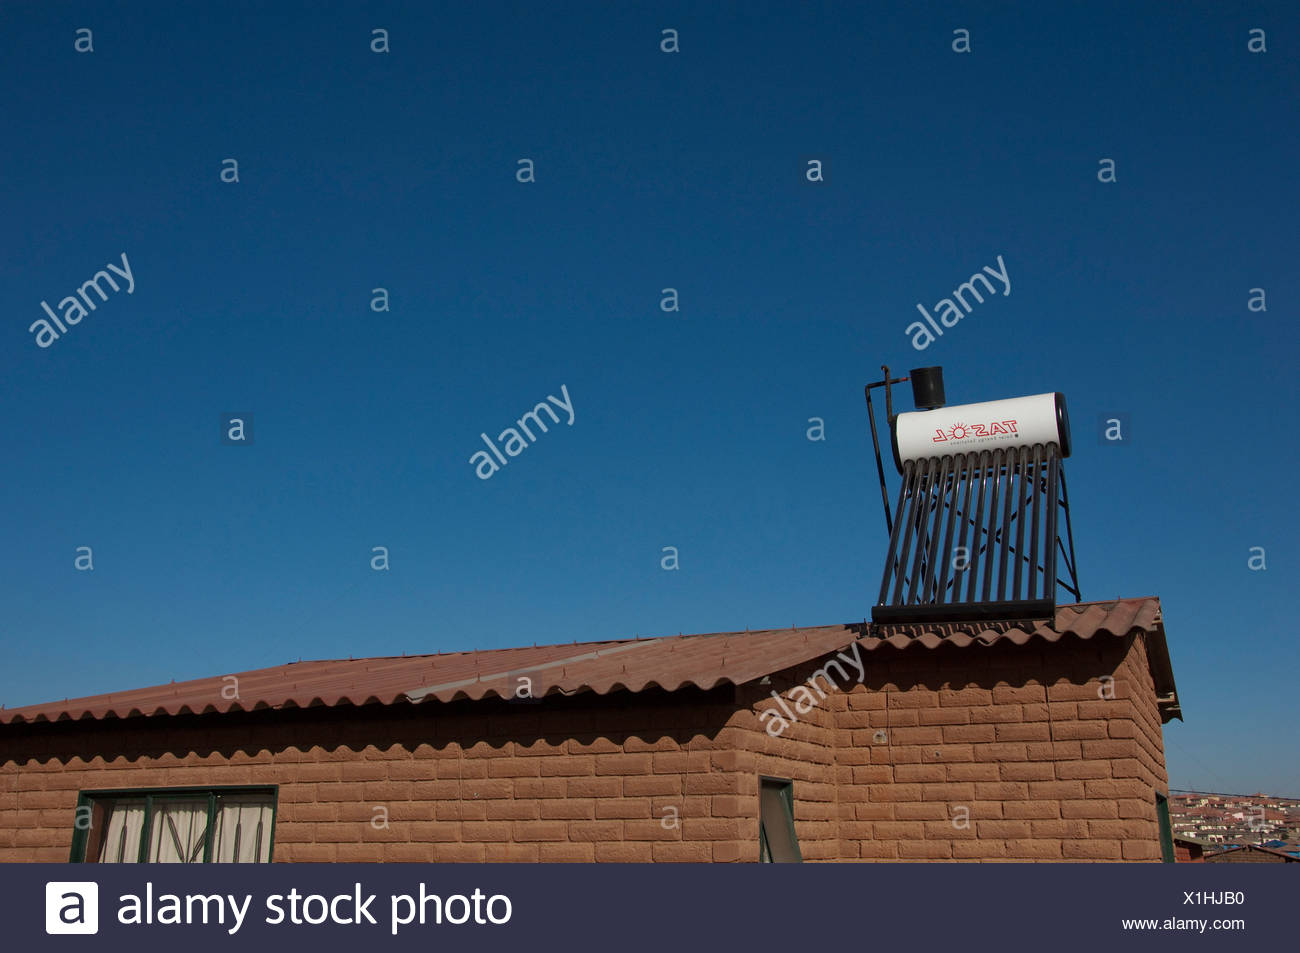 Landscape shot of a rural home with solar powered heating on the roof - Stock Image